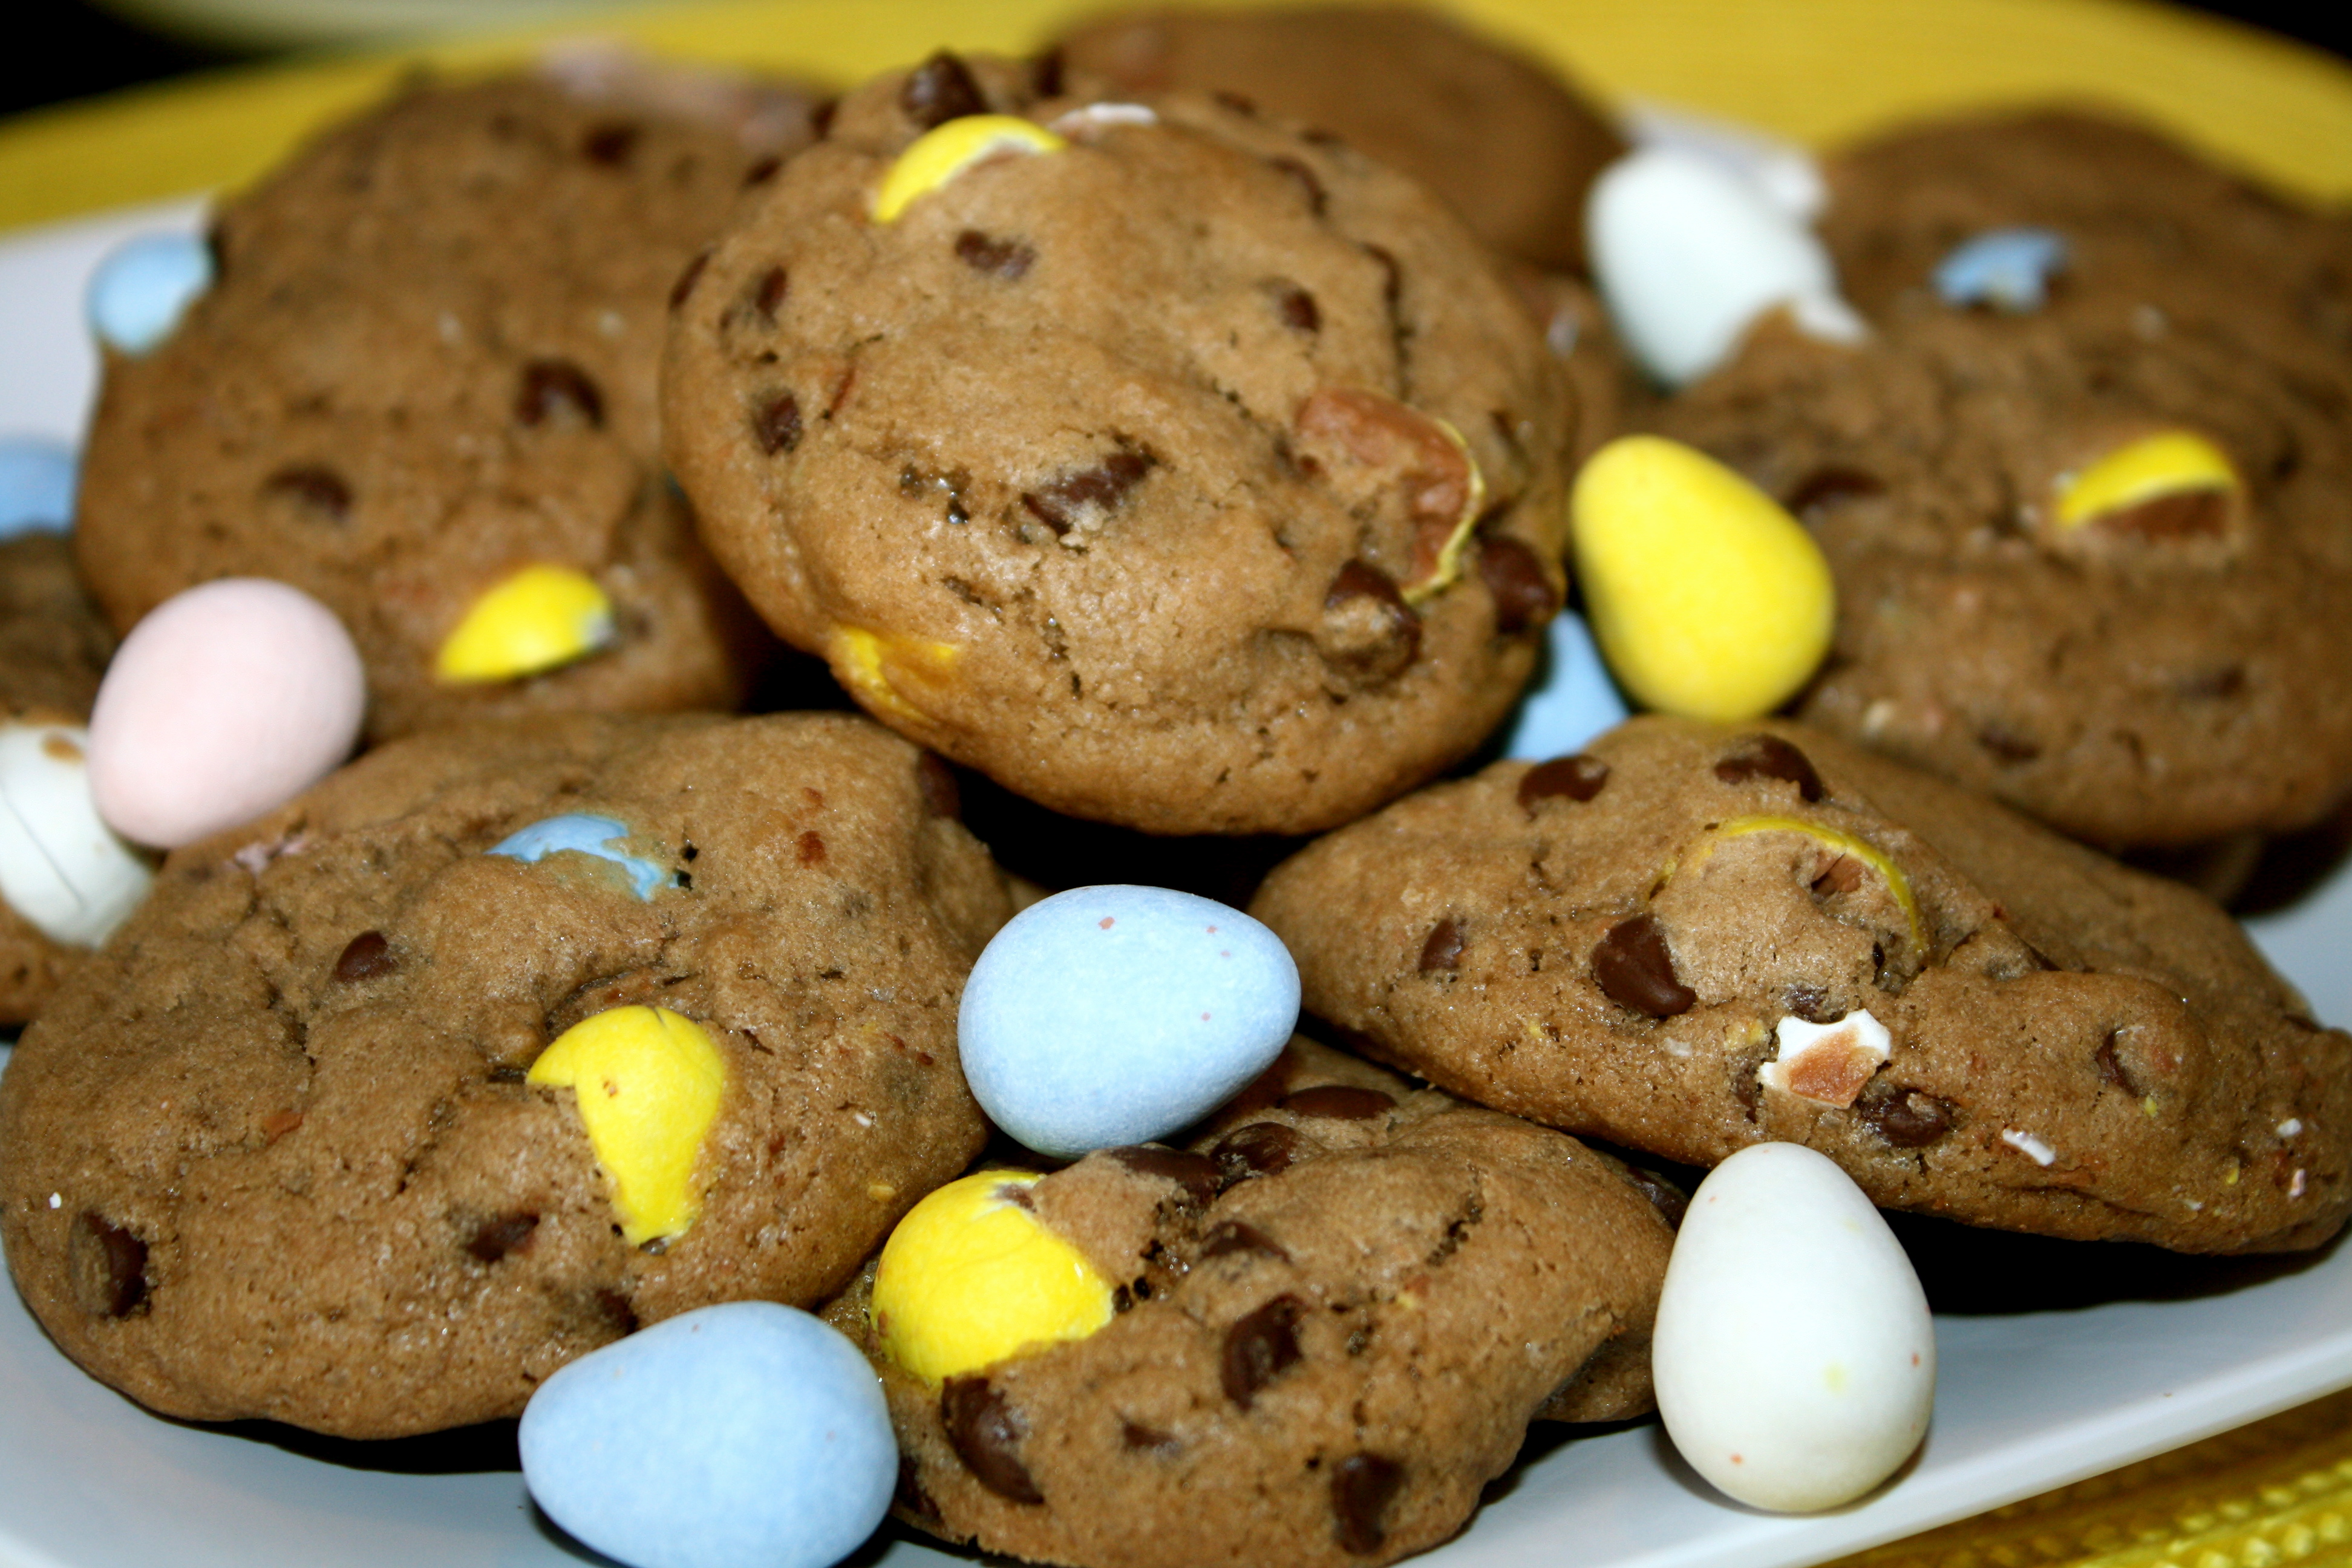 This Recipe Incorporates Chopped Up Cadbury Mini Eggs Right Into The Batter Along With Some Mini Chocolate Chips Chocolate Pudding Mix It Creates One